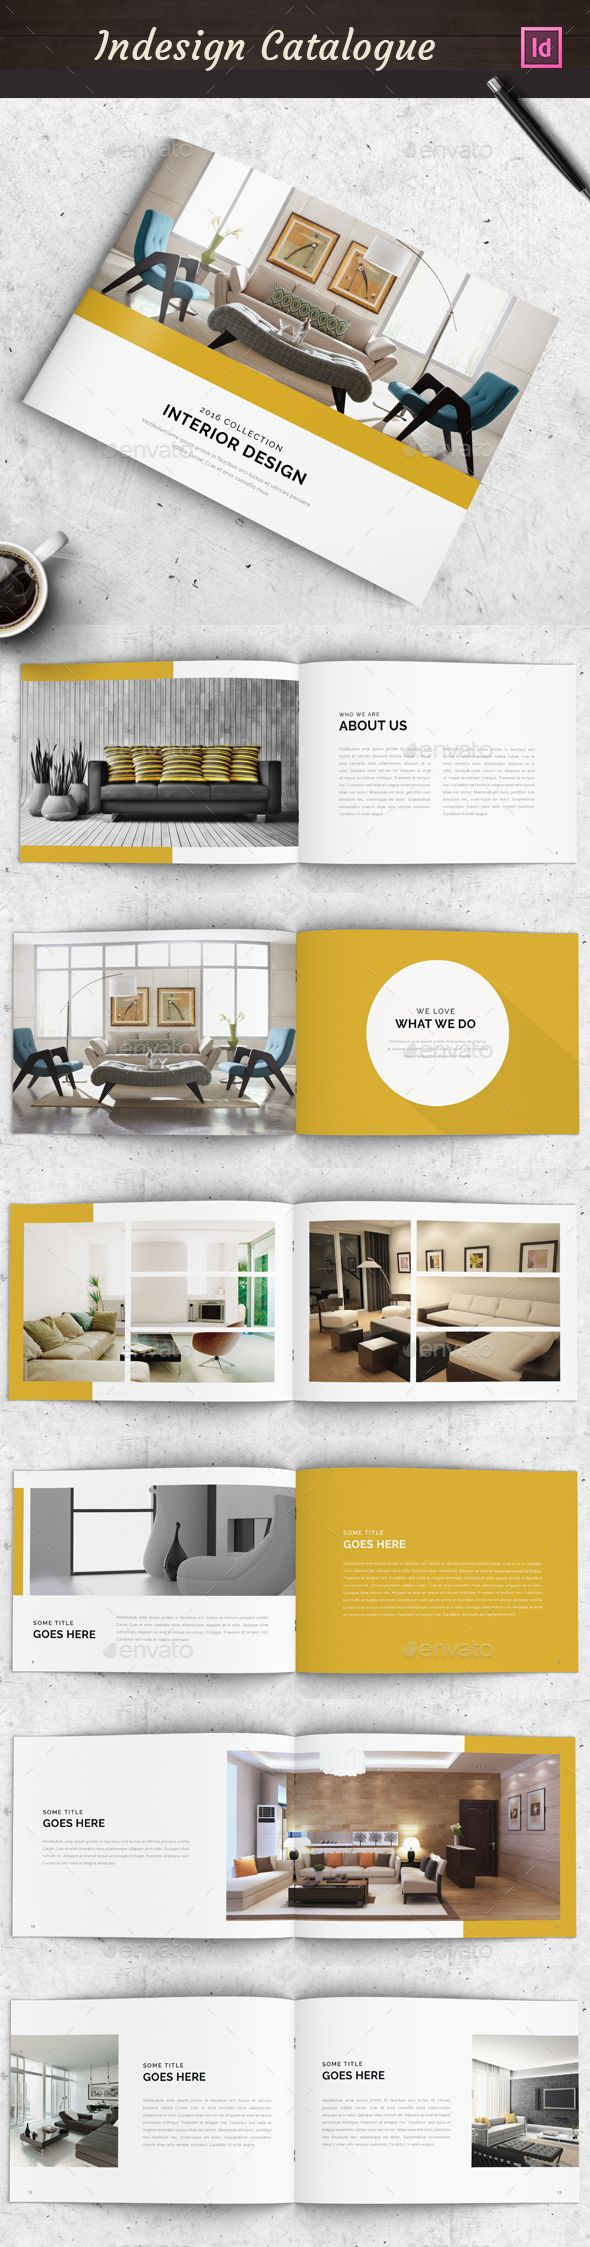 Minimal Portfolio Brochure 02 Design LayoutArchitecture